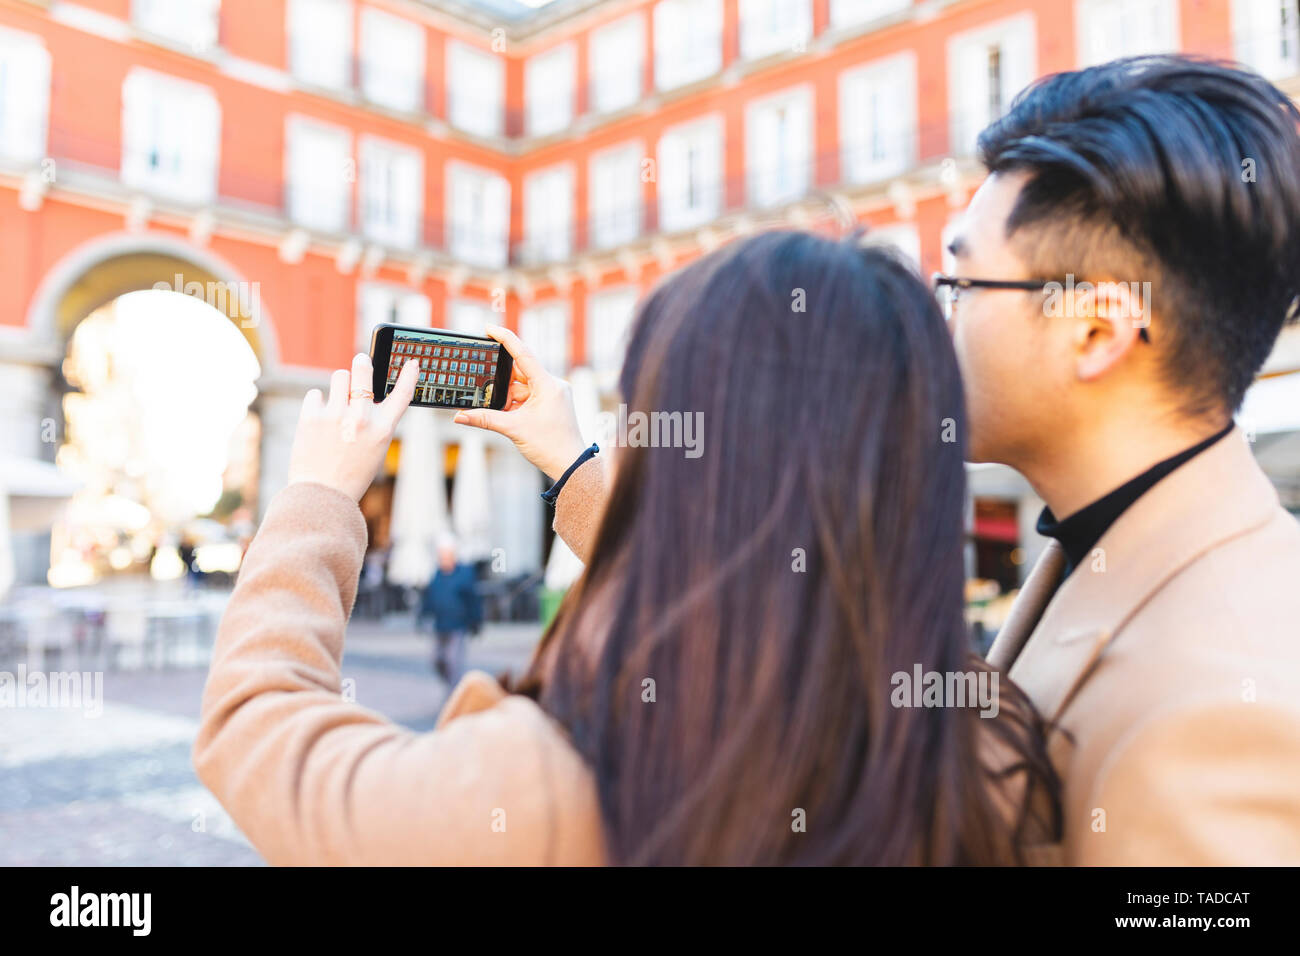 Spain, Madrid, young couple taking a smartphone picture in the city - Stock Image